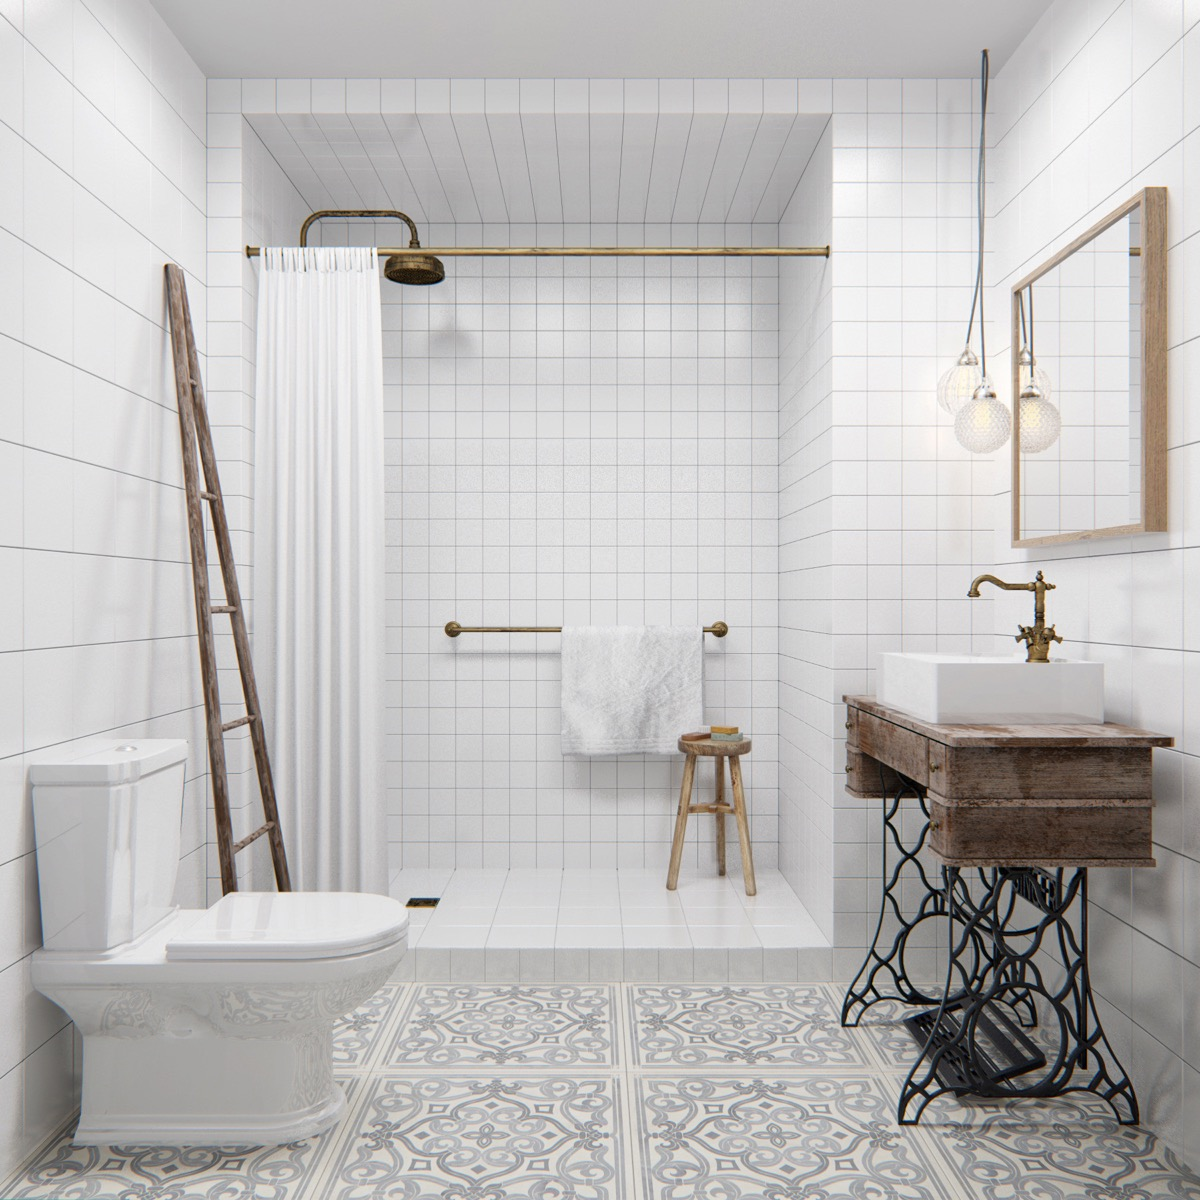 Apartment Bathroom Tiles Apartment: 3 Studio Apartments Under 50sqm For City-Dwelling Couples (Including Floor Plans